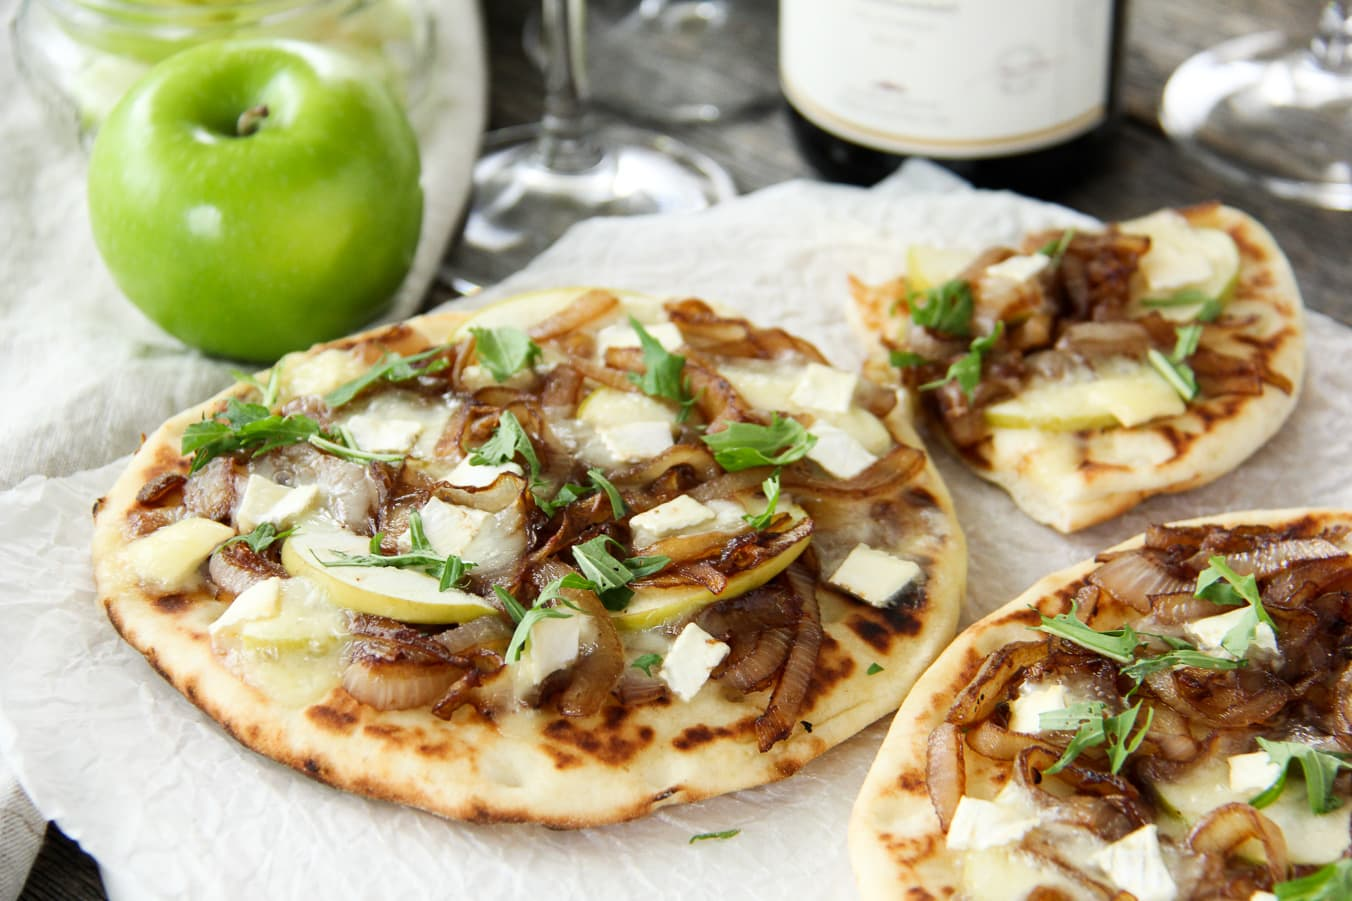 Caramelized Onion, Apple and Brie Flatbread